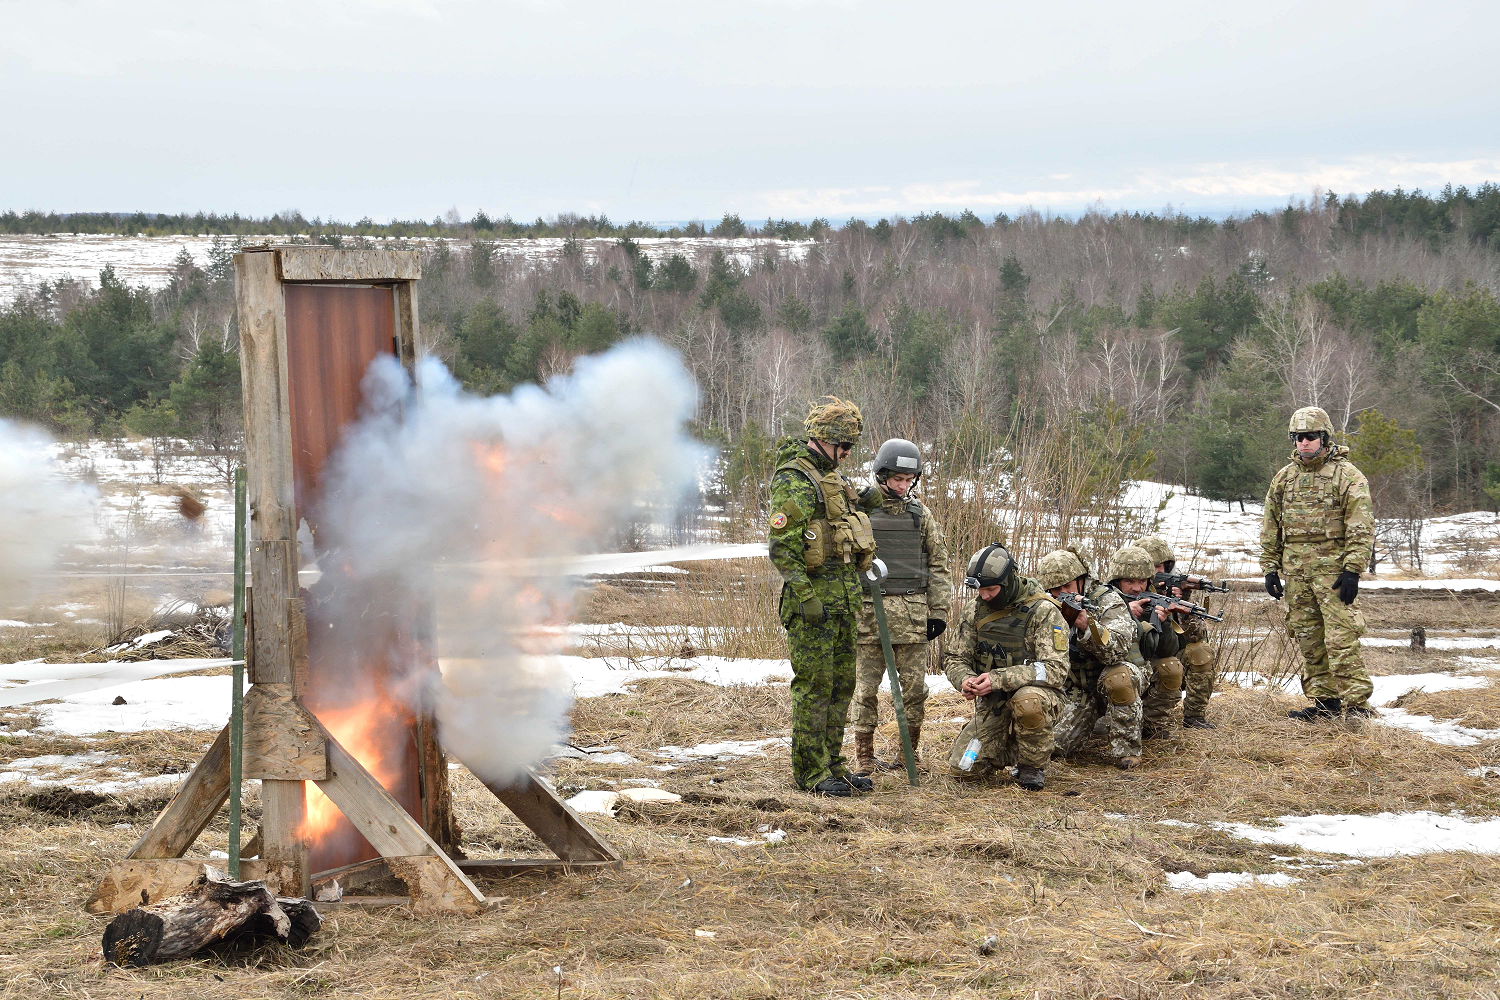 February 23, 2017. A Ukrainian soldier detonates a charge during explosive door breaching practice with Canadian and American combat engineer instructors of Joint Task Force – Ukraine during Operation UNIFIER at the International Peacekeeping and Security Centre in Starychi, Ukraine on February 23, 2017. (Photo: Joint Task Force – Ukraine)